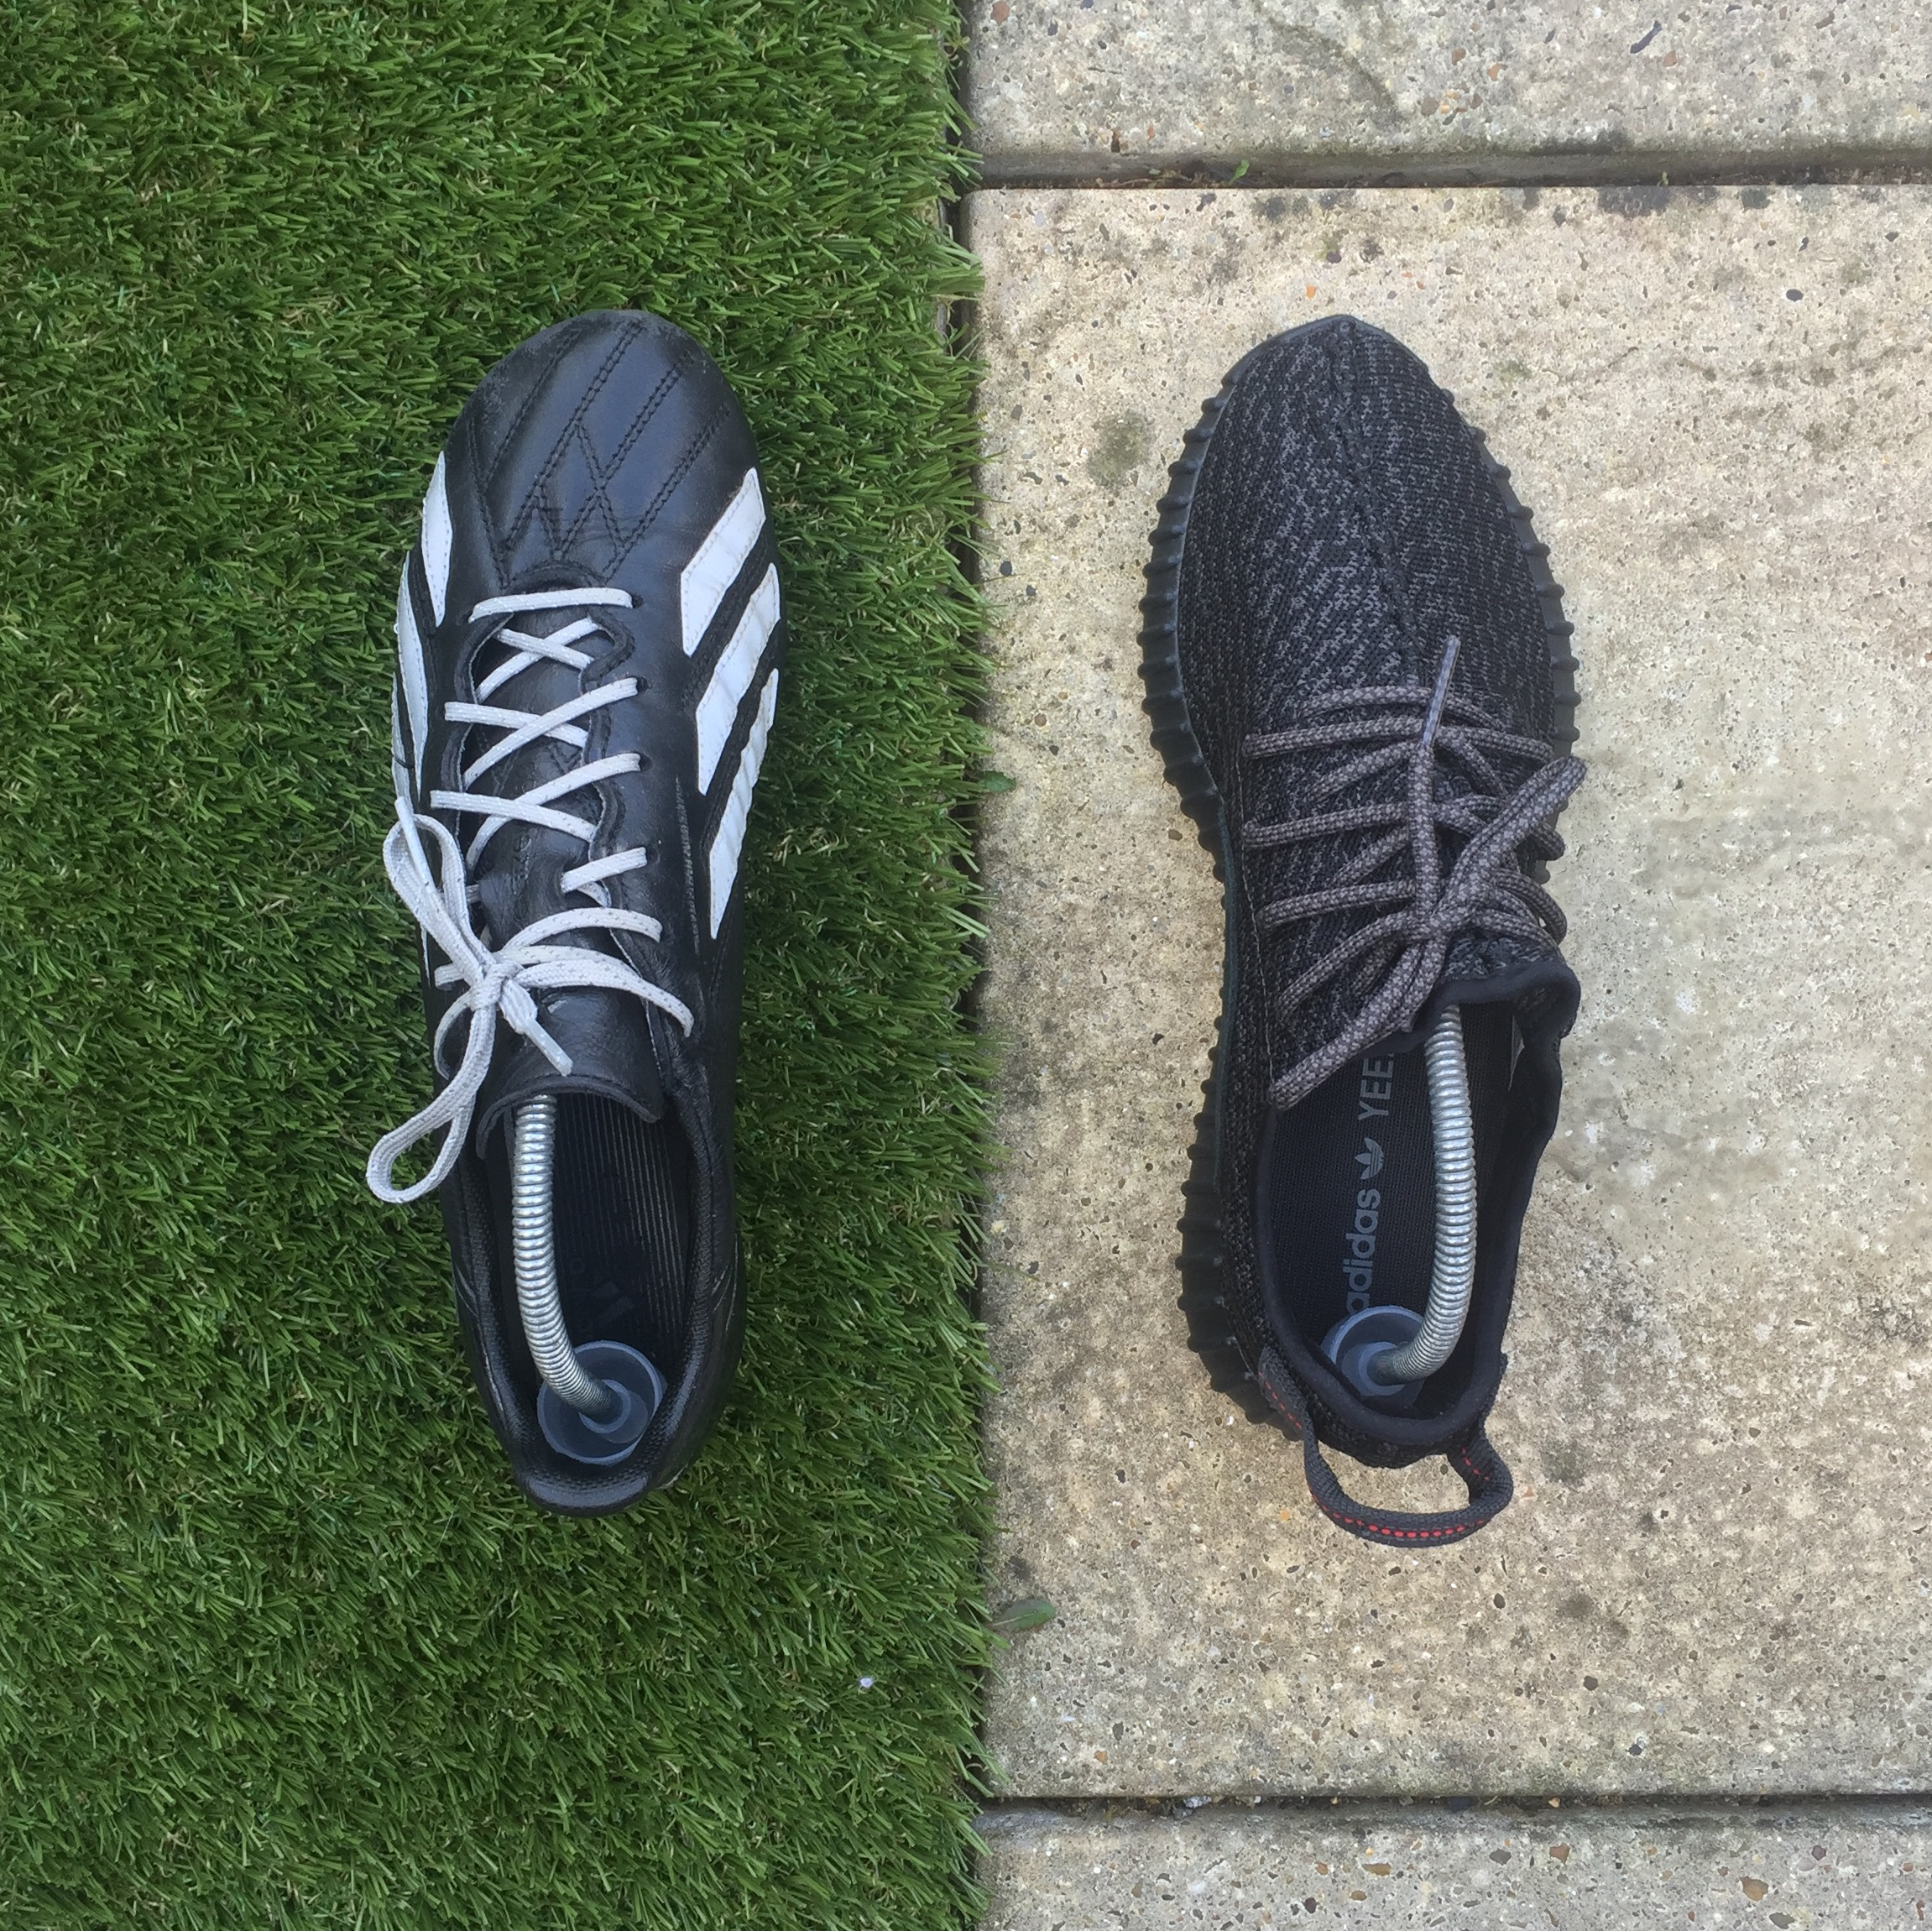 Adidas F50 Enlighten & Yeezy Boost 350